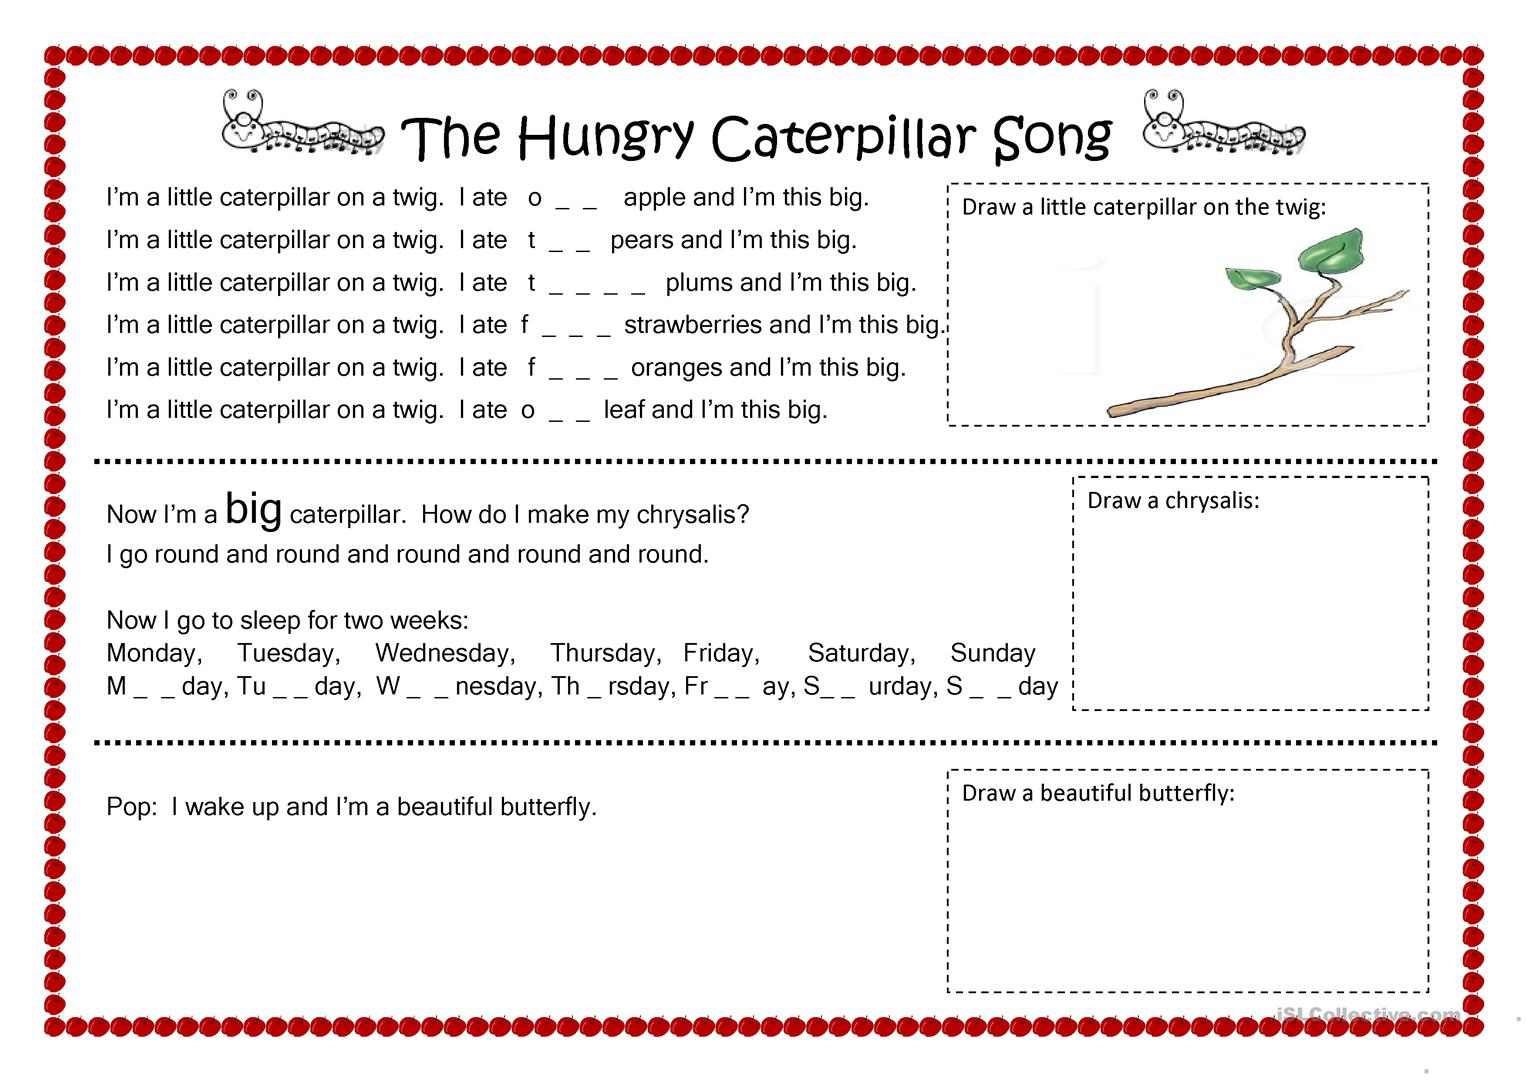 Worksheets Very Hungry Caterpillar Worksheets Cheatslist